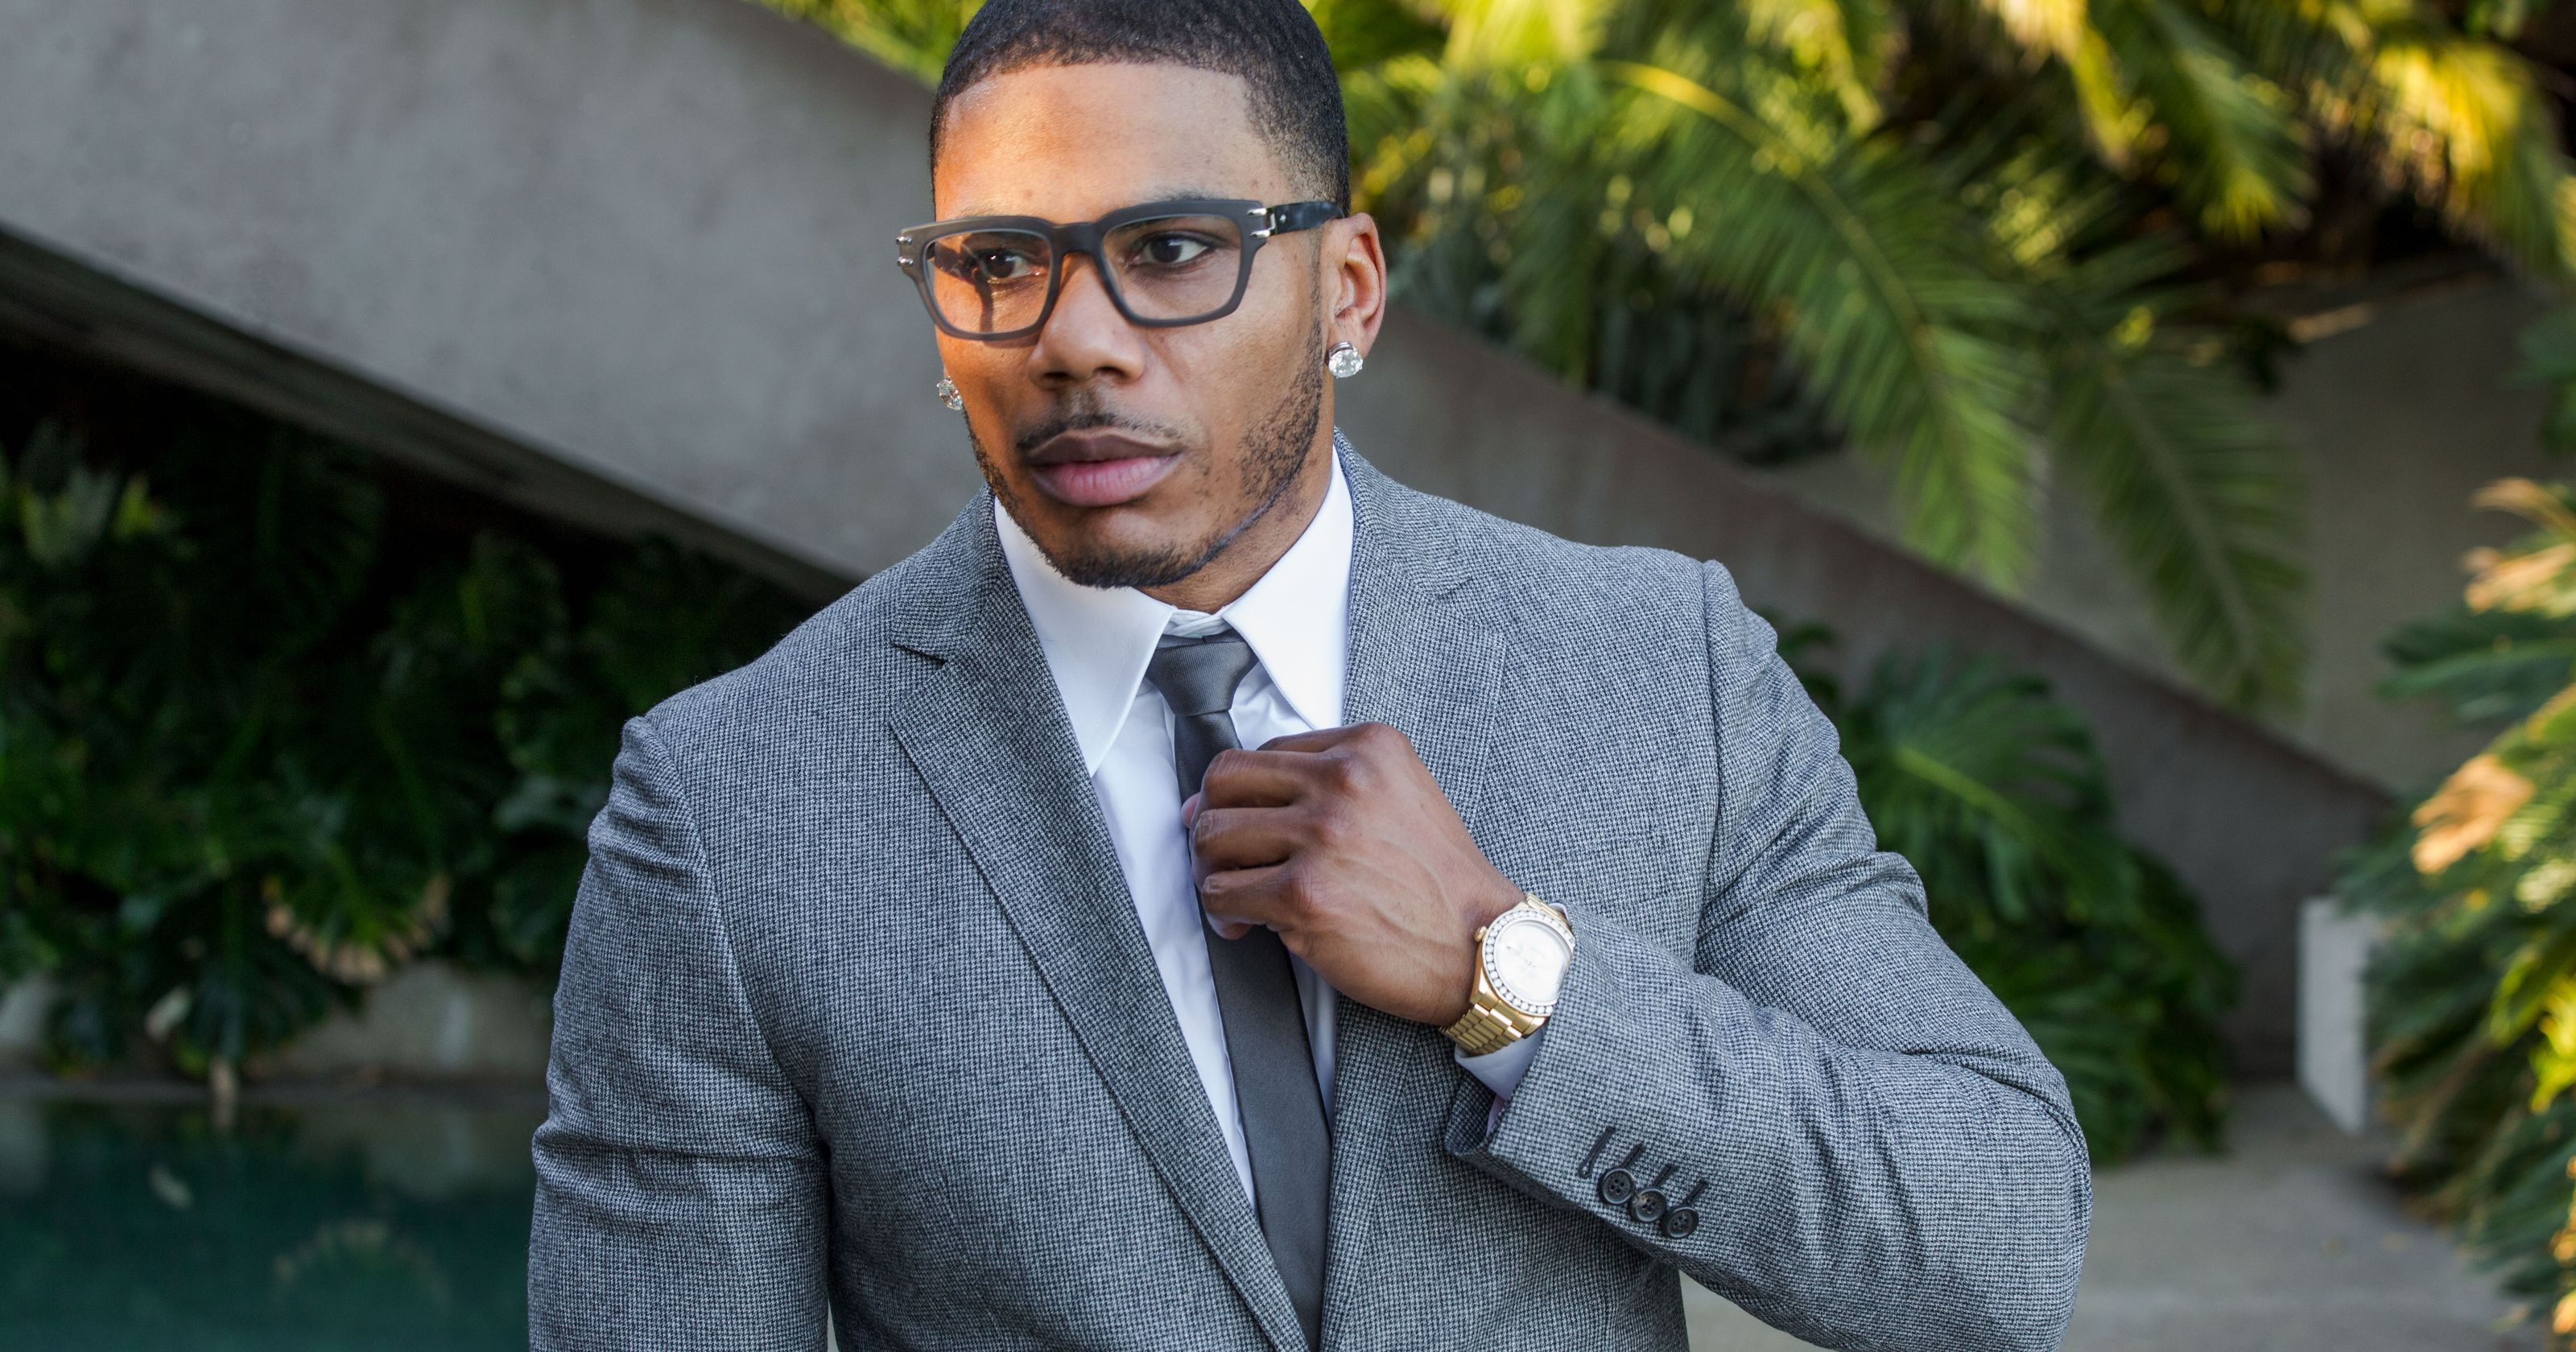 Nelly Needs You To Stream His Songs So He Can Pay His Taxes